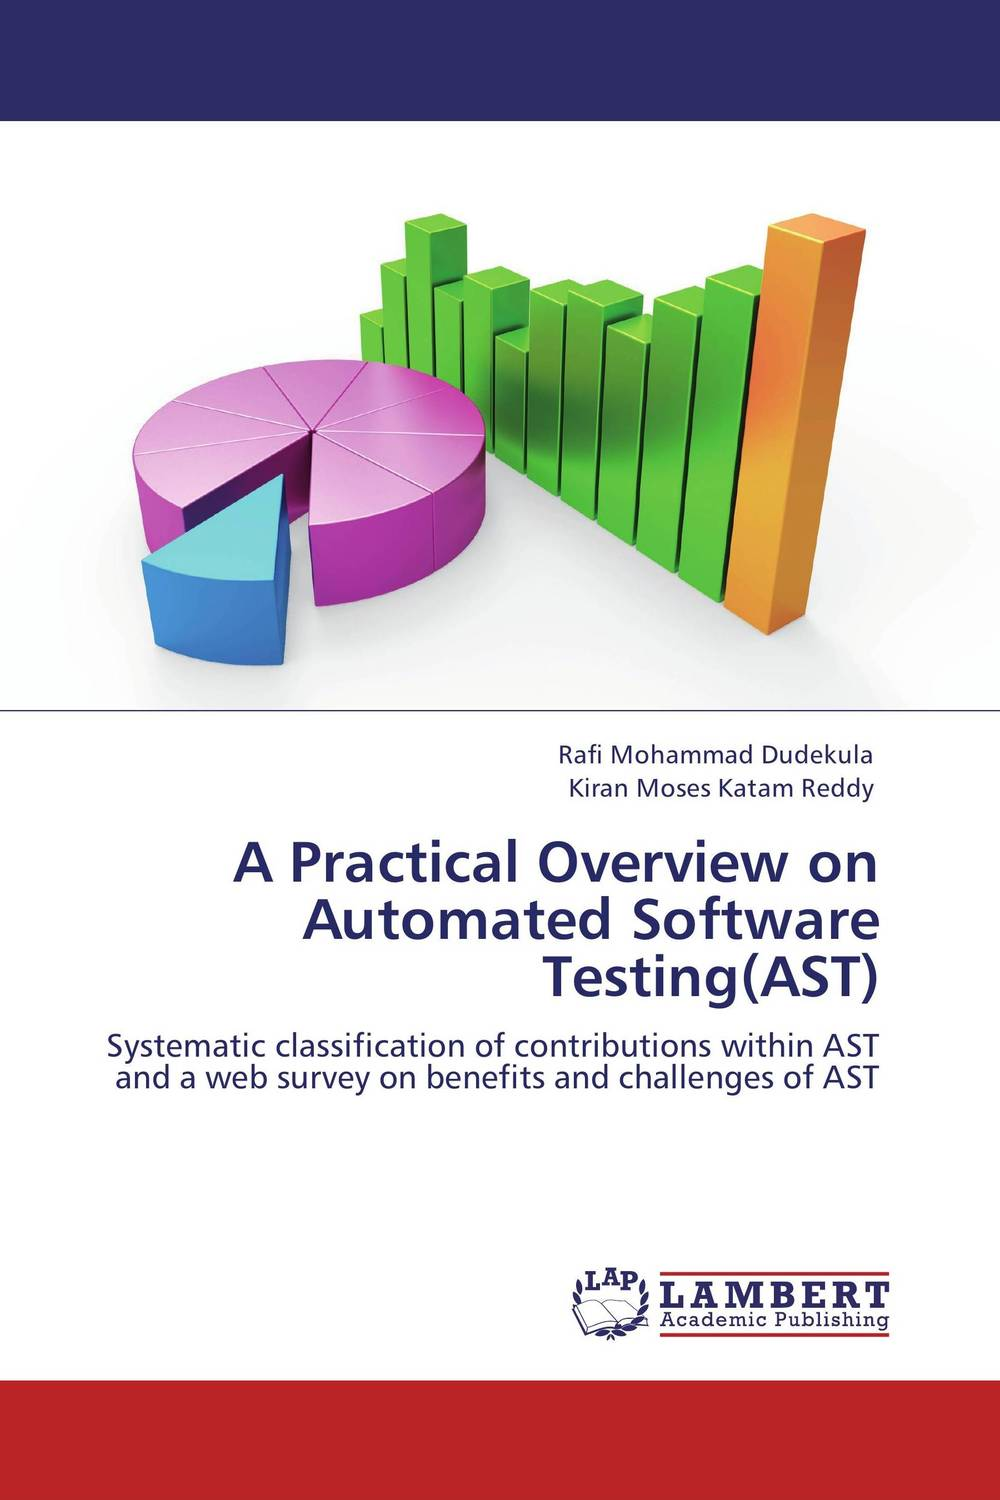 A Practical Overview on Automated Software Testing(AST) observations on reusability frameworks and testing